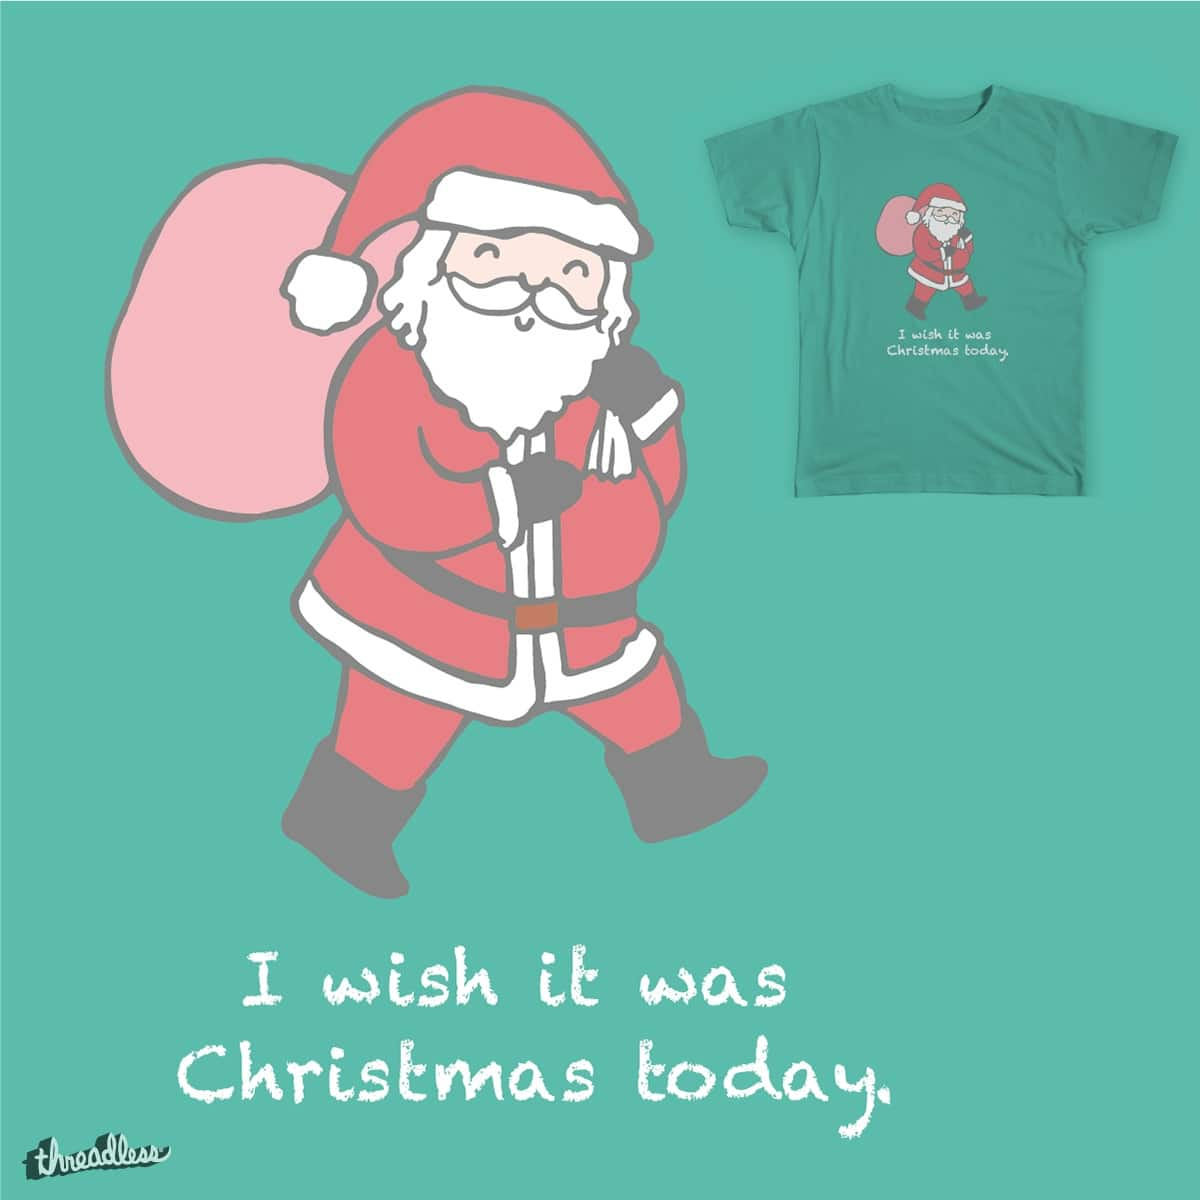 i wish it was christmas today by dawngoo on threadless